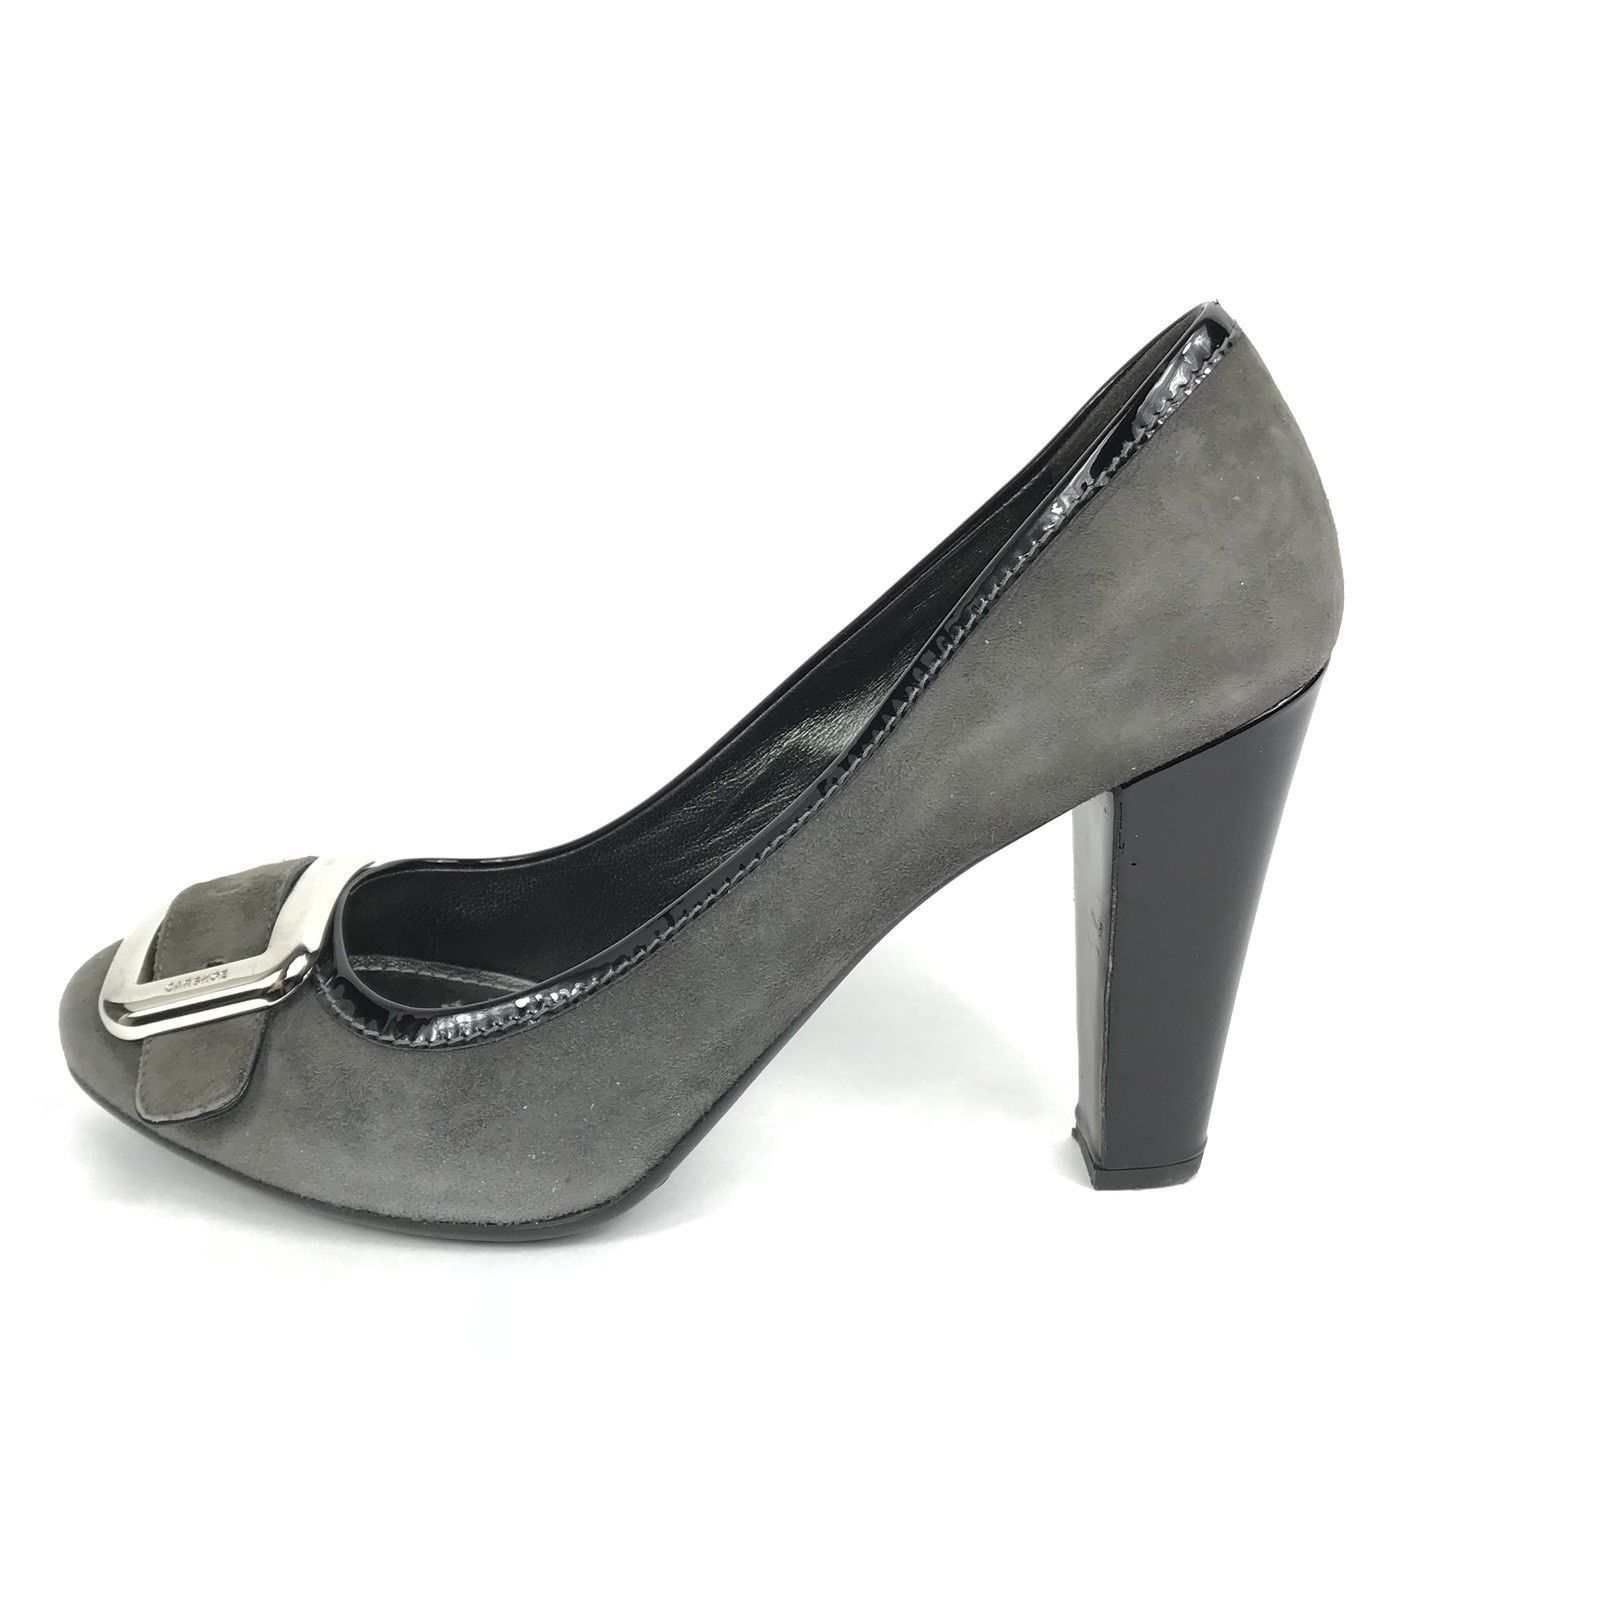 Original Car Shoe by Prada Suede Stacked Heel Patent Sz 40 9.5 10